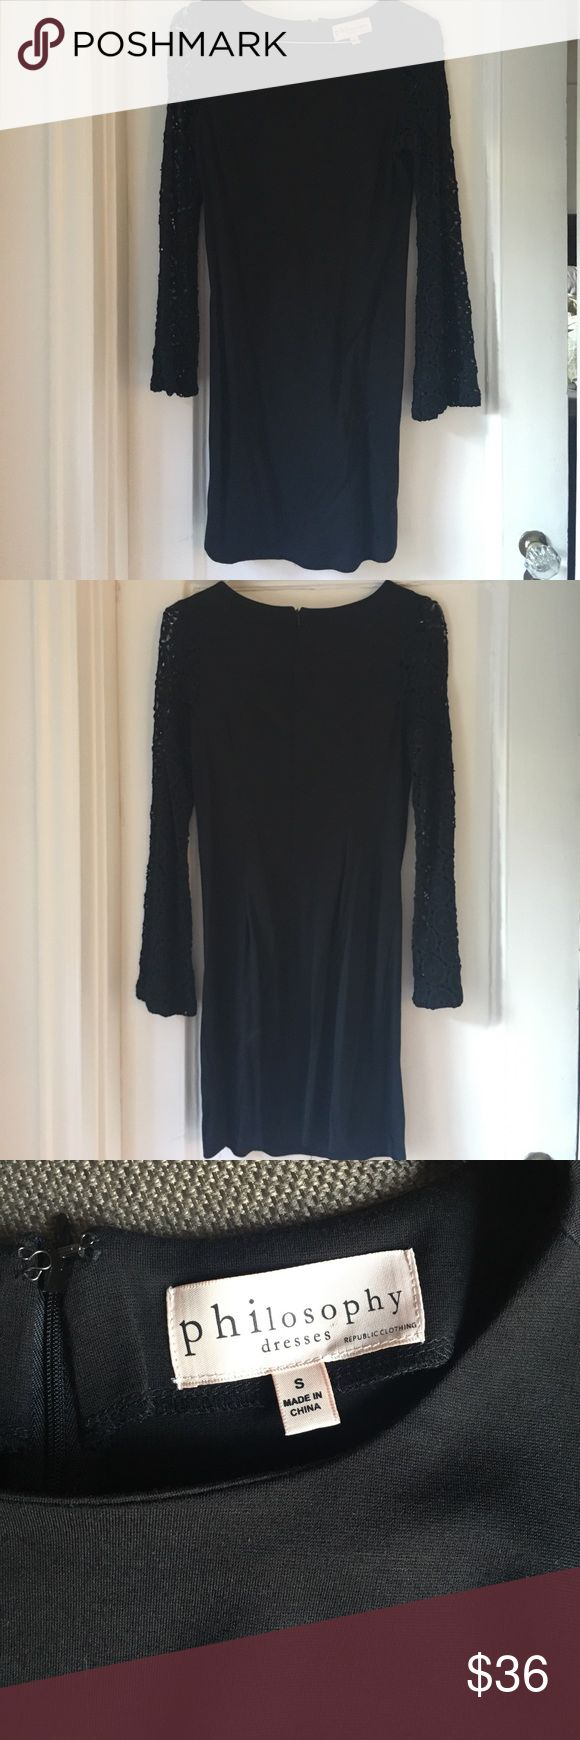 Lace long-sleeved Philosophy dress Philosophy dress, black with lace long bell sleeves. Stretchy fabric makes this dress very comfortable! Never worn and in excellent condition! Philosophy Dresses Long Sleeve